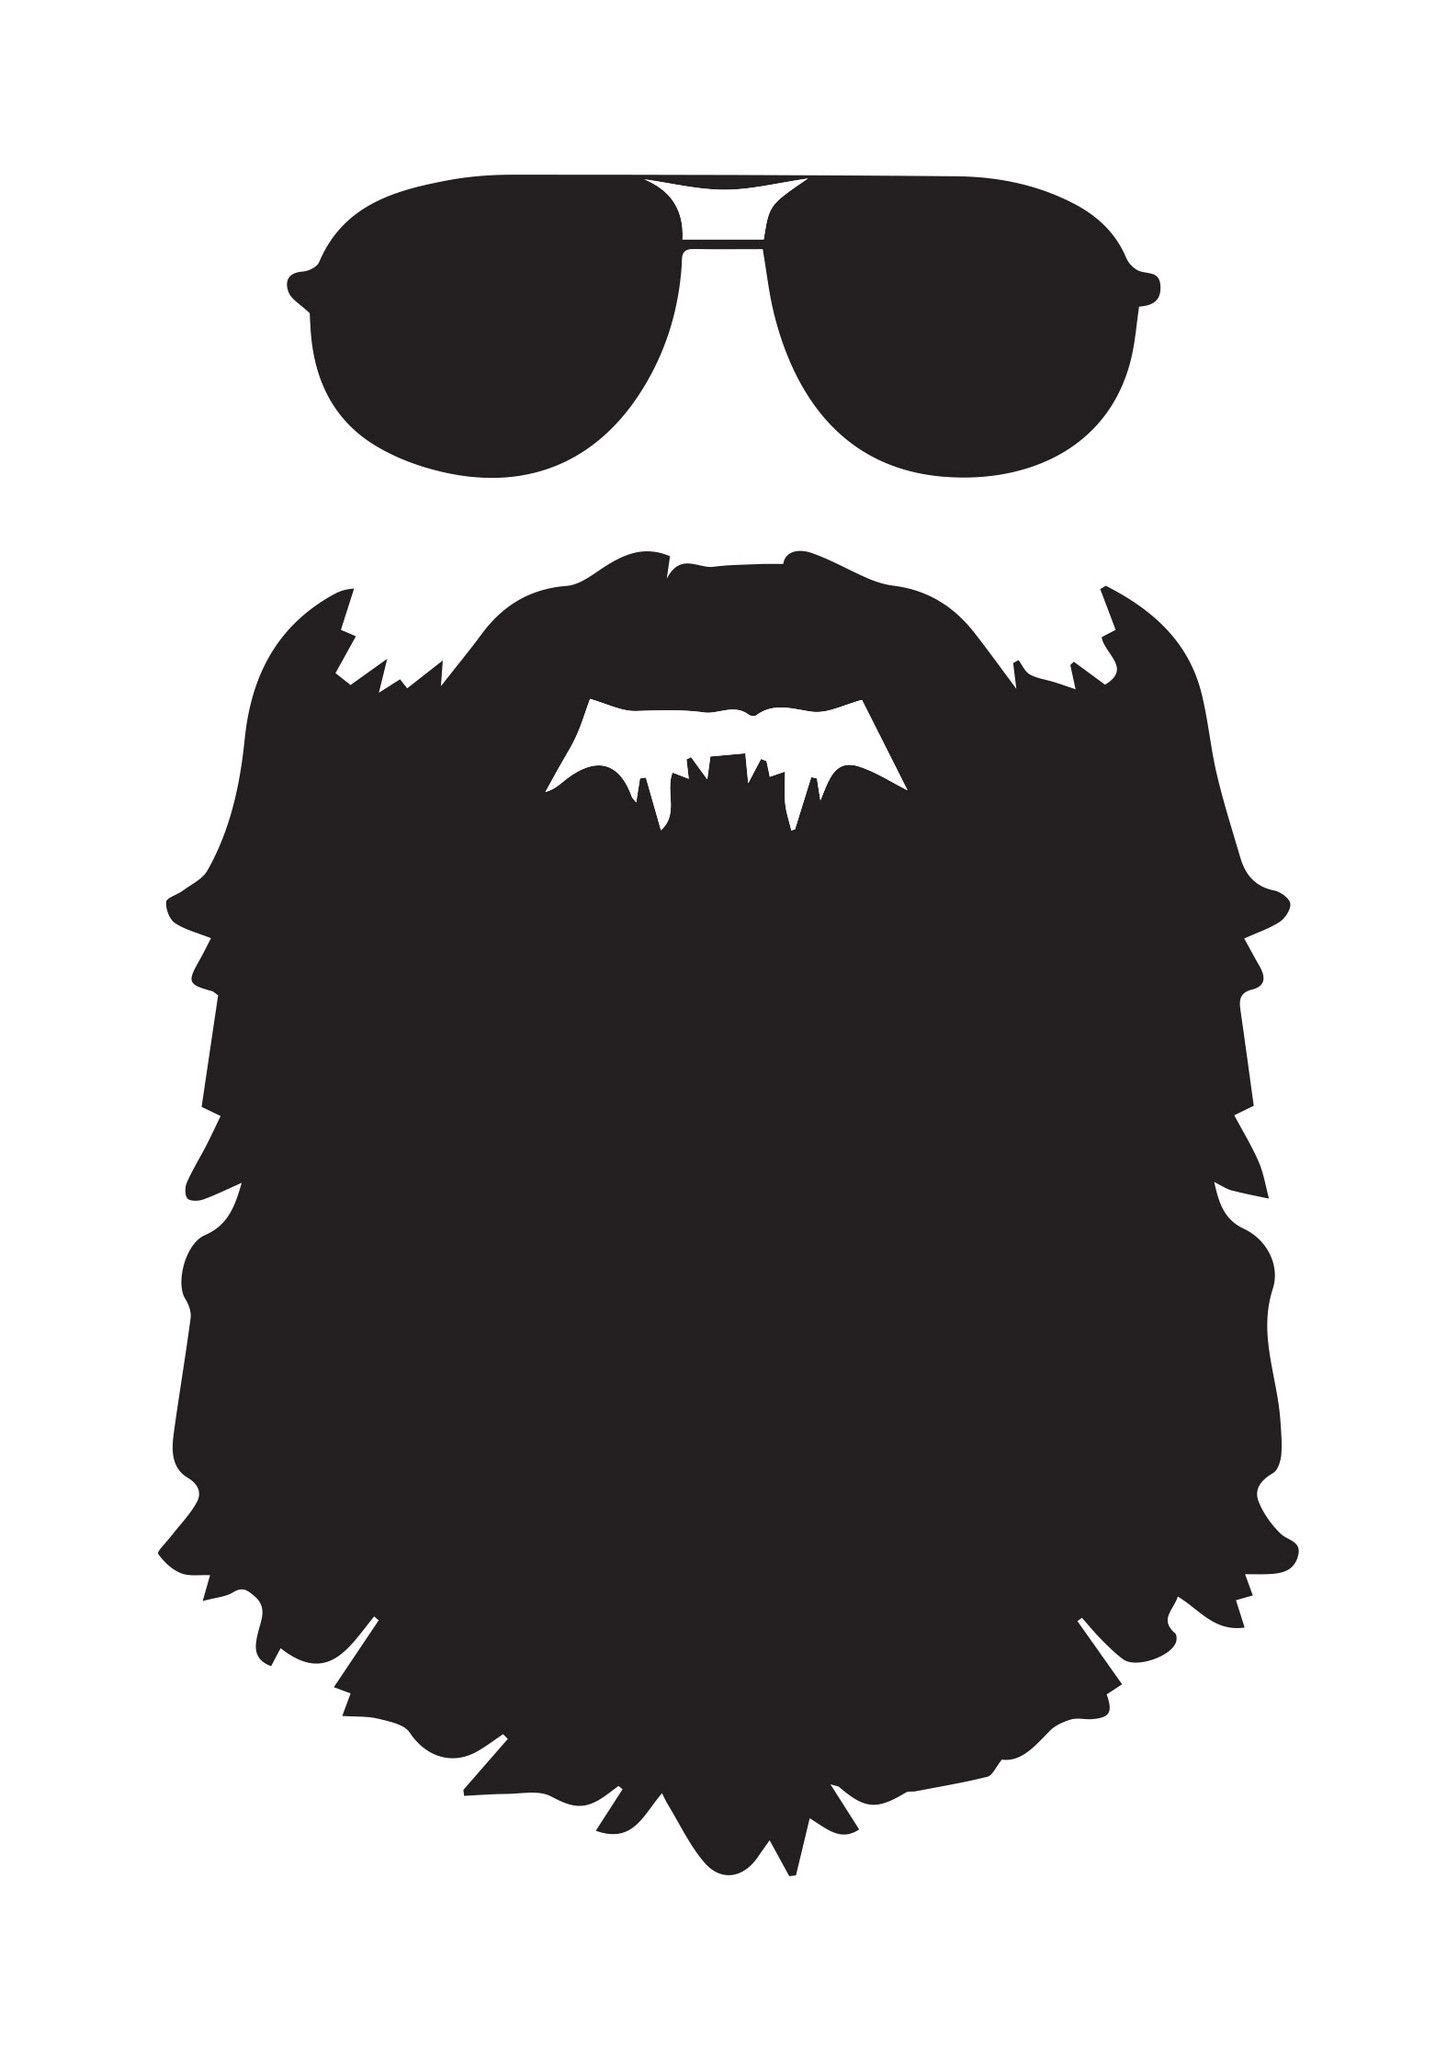 picture royalty free download With aviator sunglasses u. Beard clipart cool shades